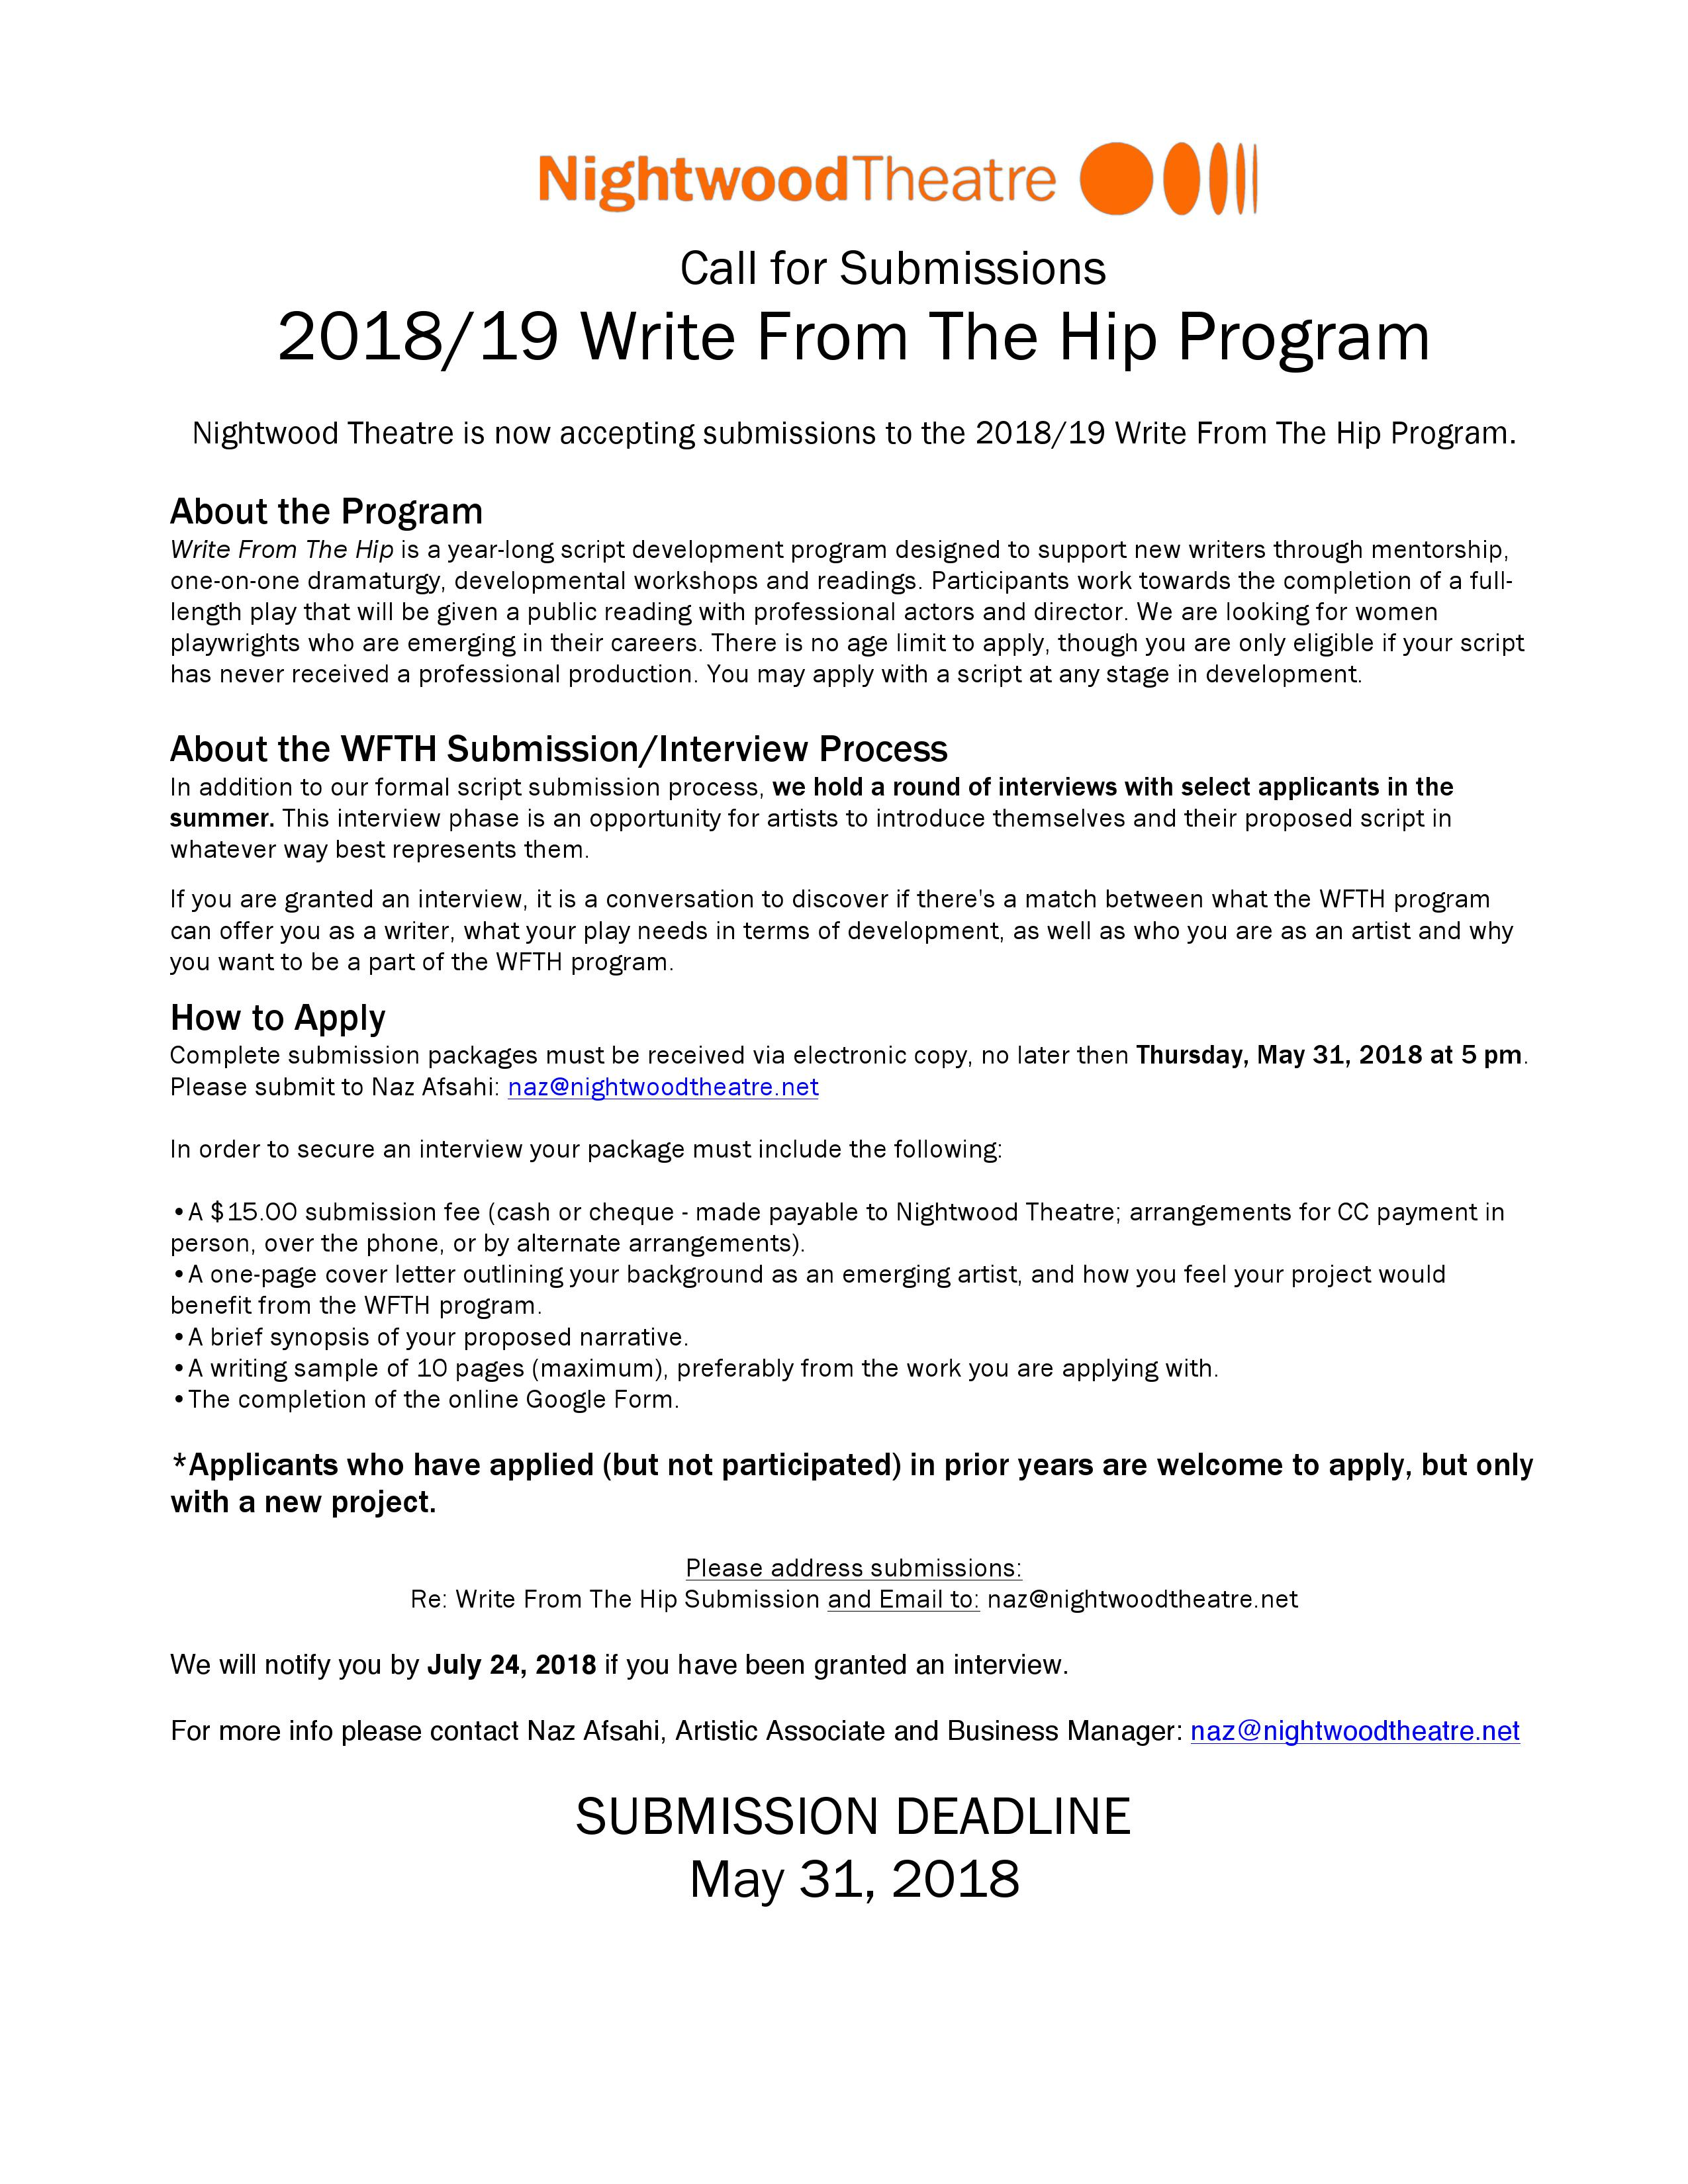 Submission Call for 2018-19 Write From The Hip